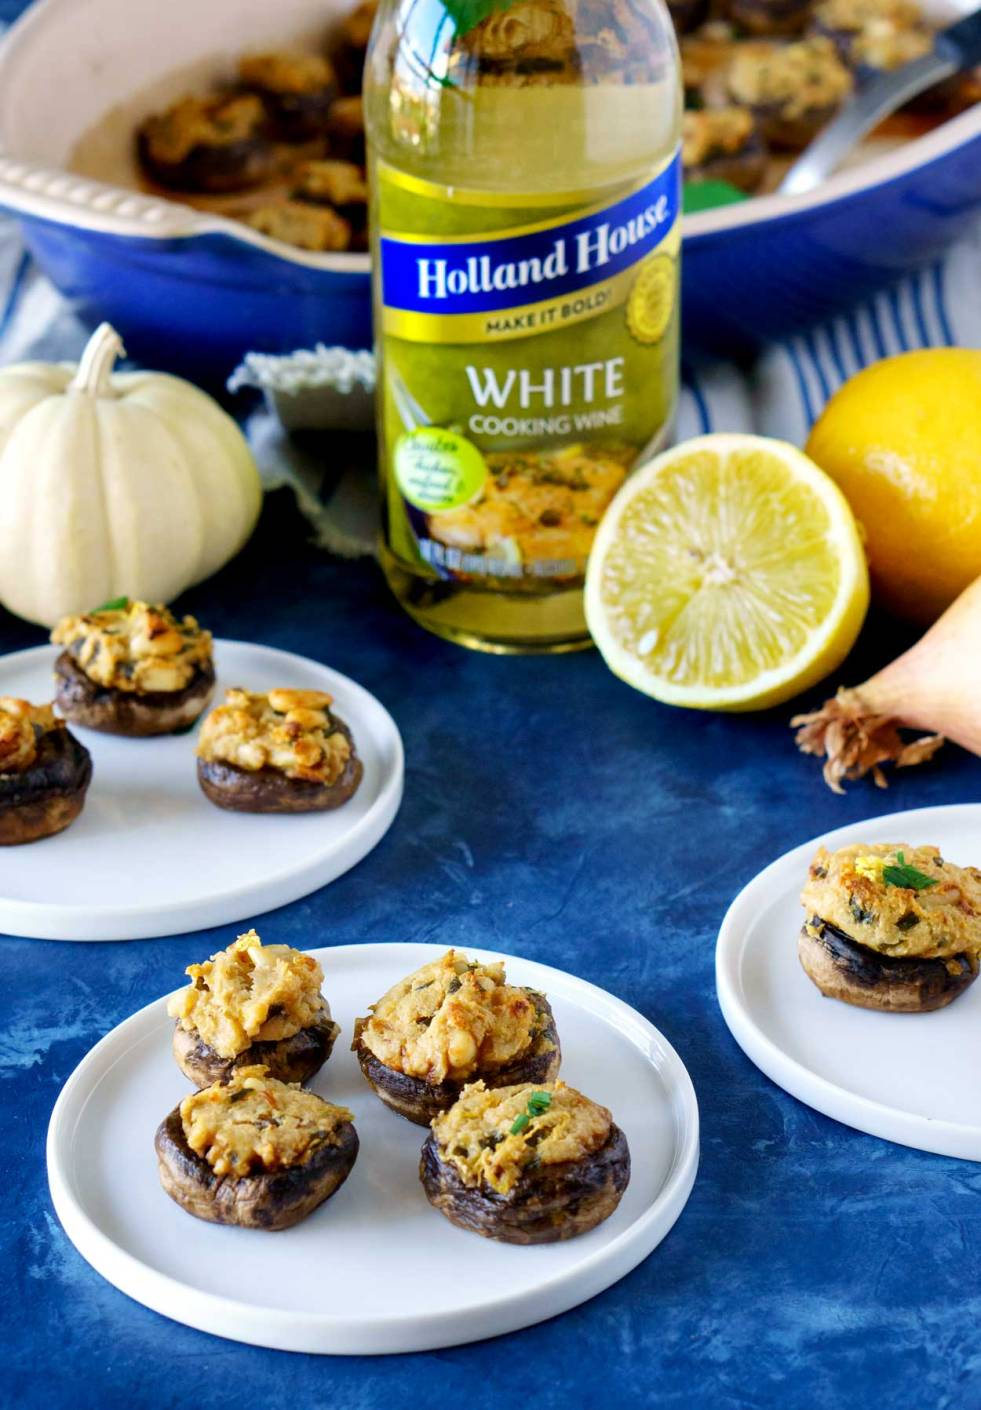 Stuffed mushrooms on white appetizer plates with a lemon and shallop in the background.